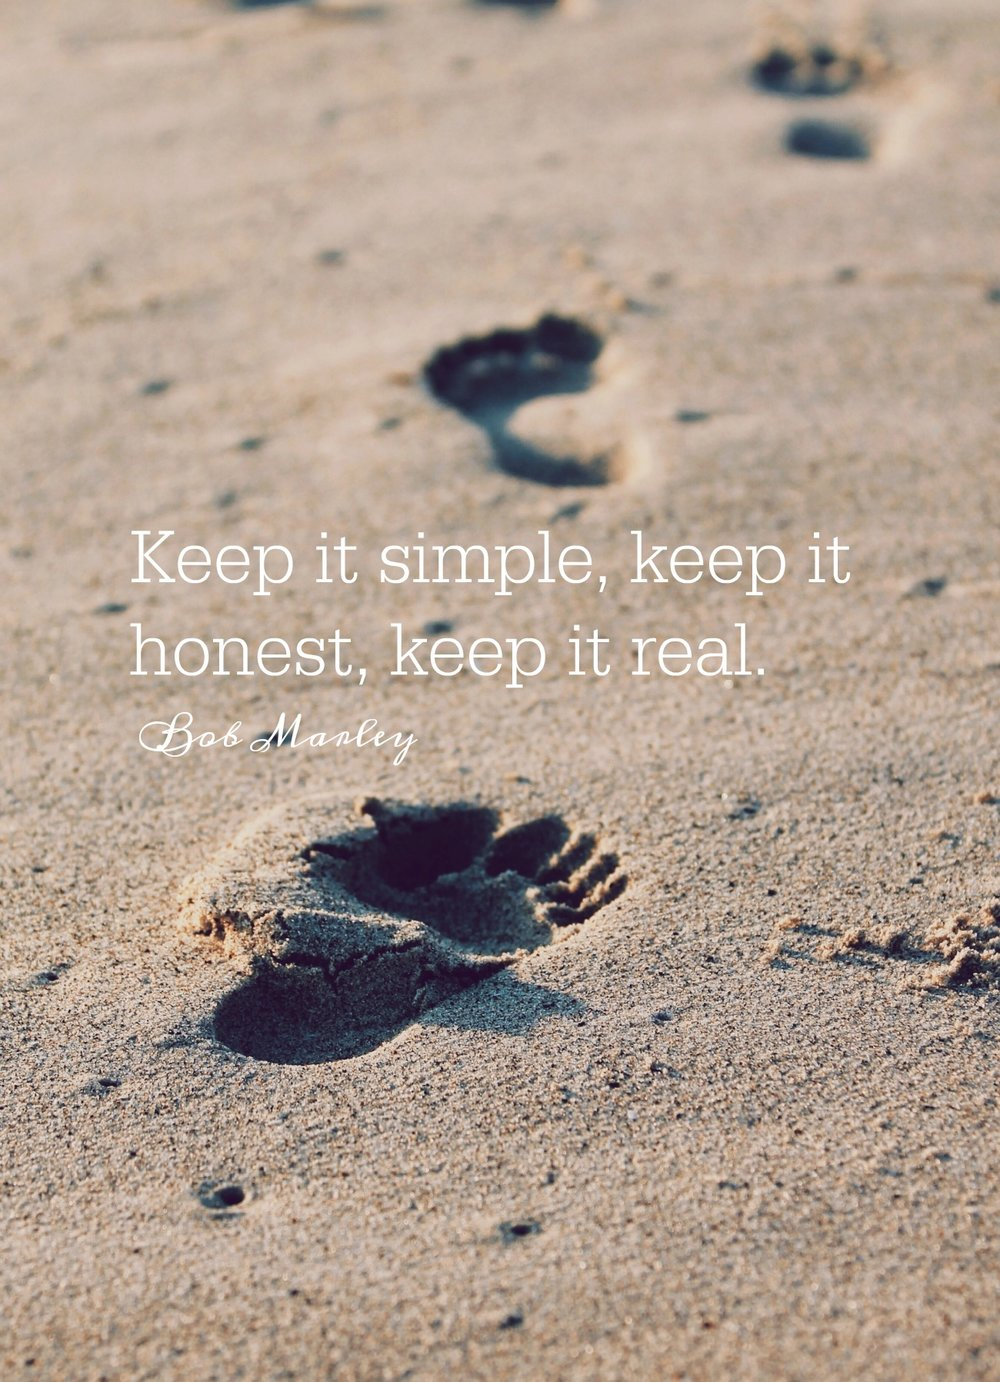 Keep it simple, keep it honest, keep it real. Bob Marley. Circle of Daydreams. www.circleofdaydreams.com